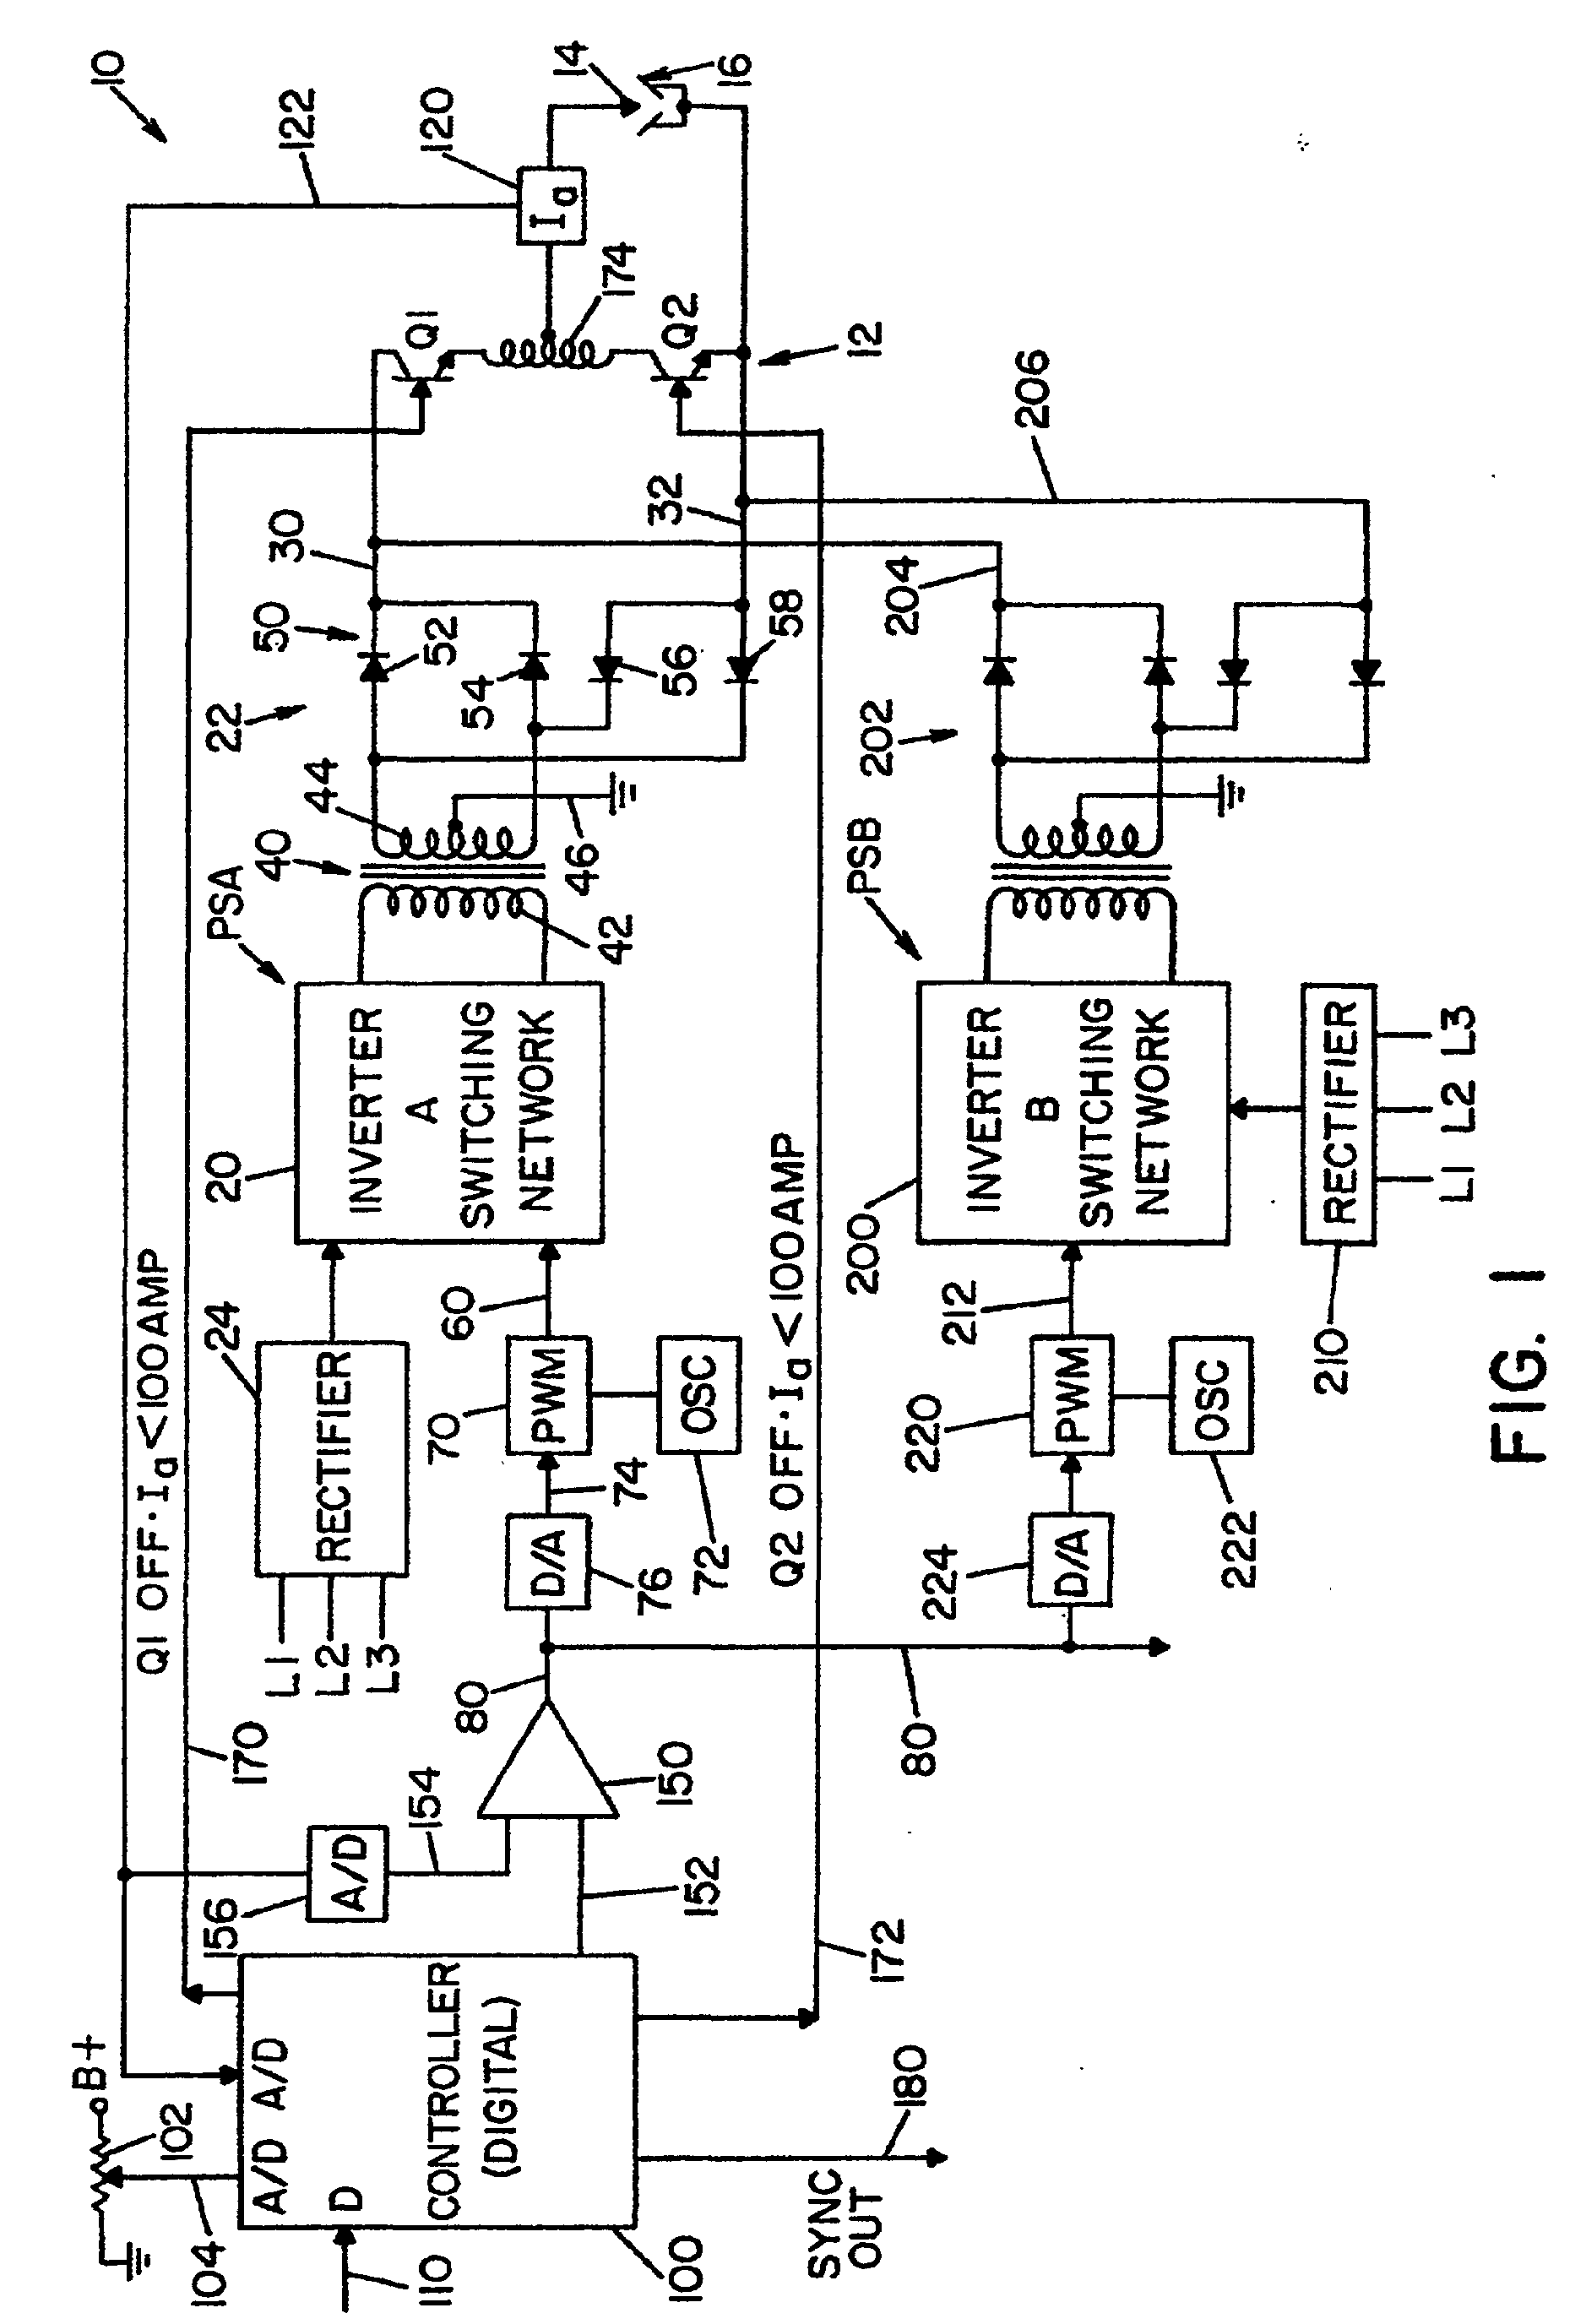 Lincoln Electric Ac 225 Arc Welder Wiring Diagram from schematron.org